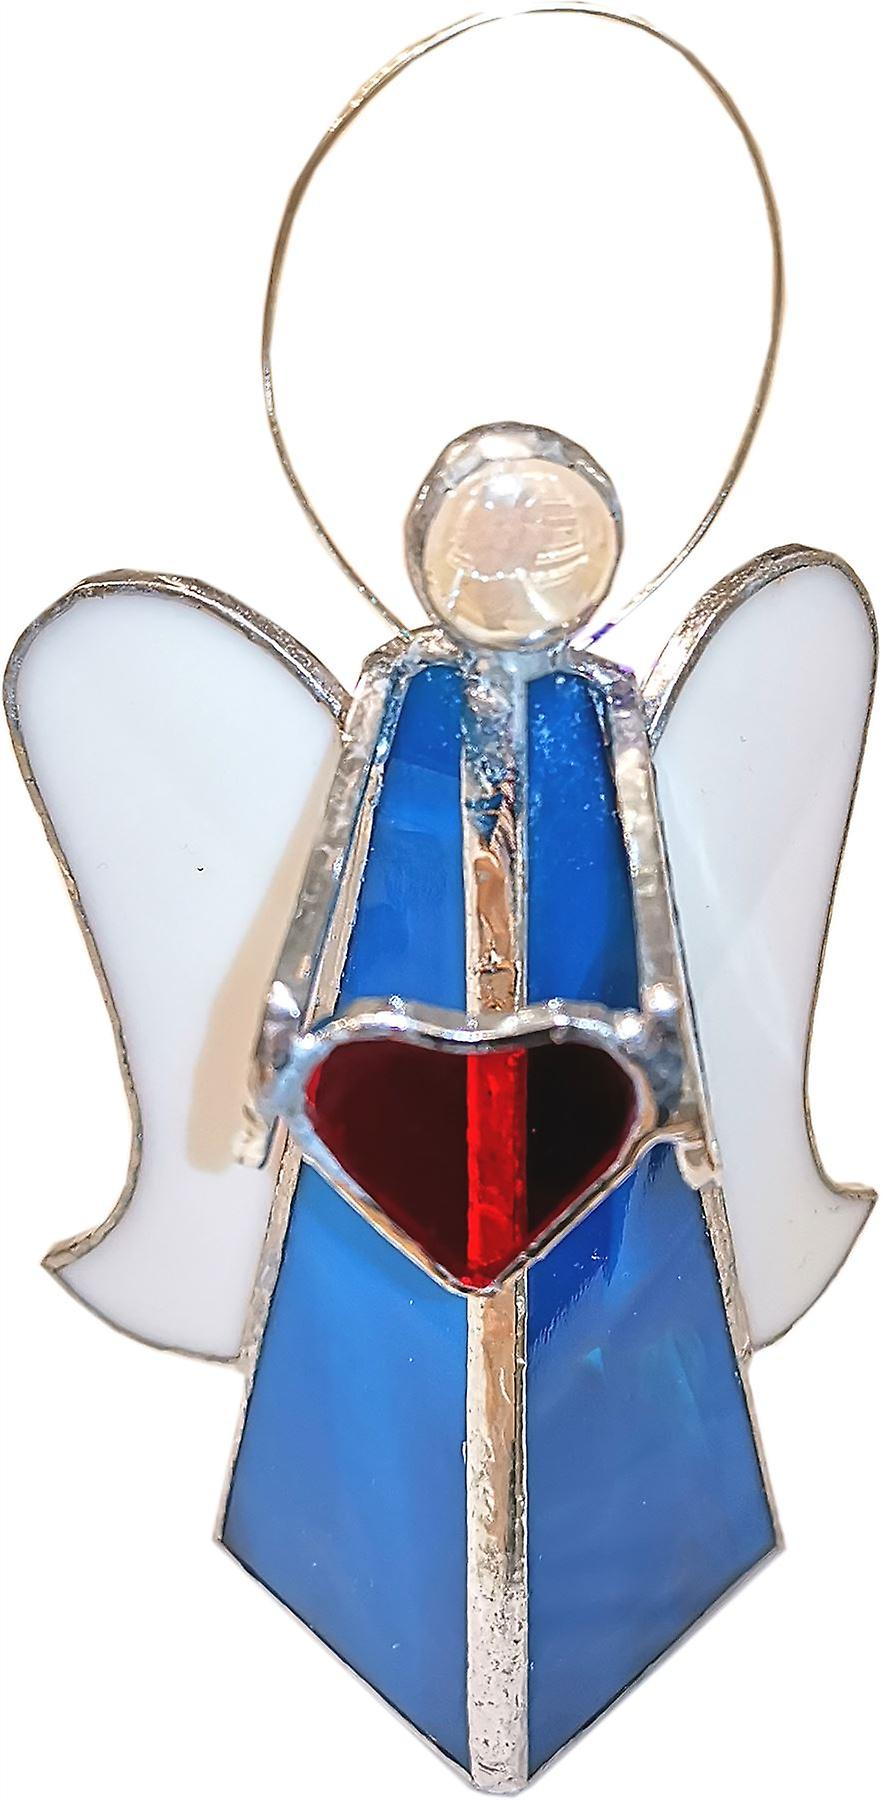 Simmerdim Design Stained Glass Angel with Heart Tealight Holder Turquoise